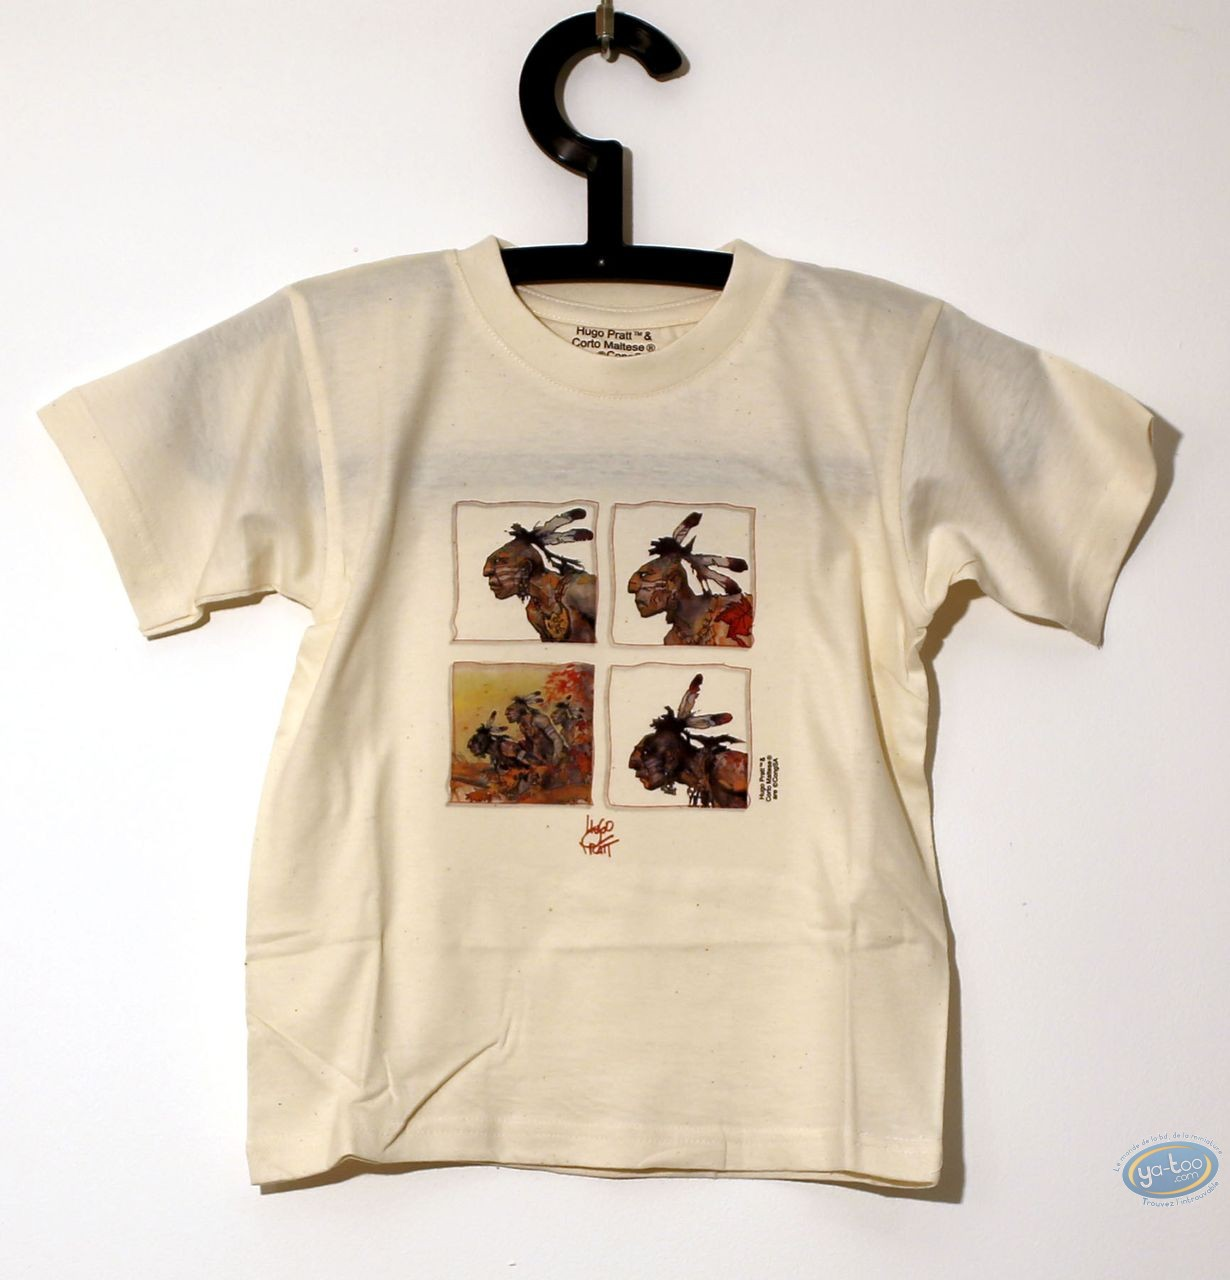 Clothes, Corto Maltese : T-shirt, Corto Maltese : Kid 06/03 - 5/6 years